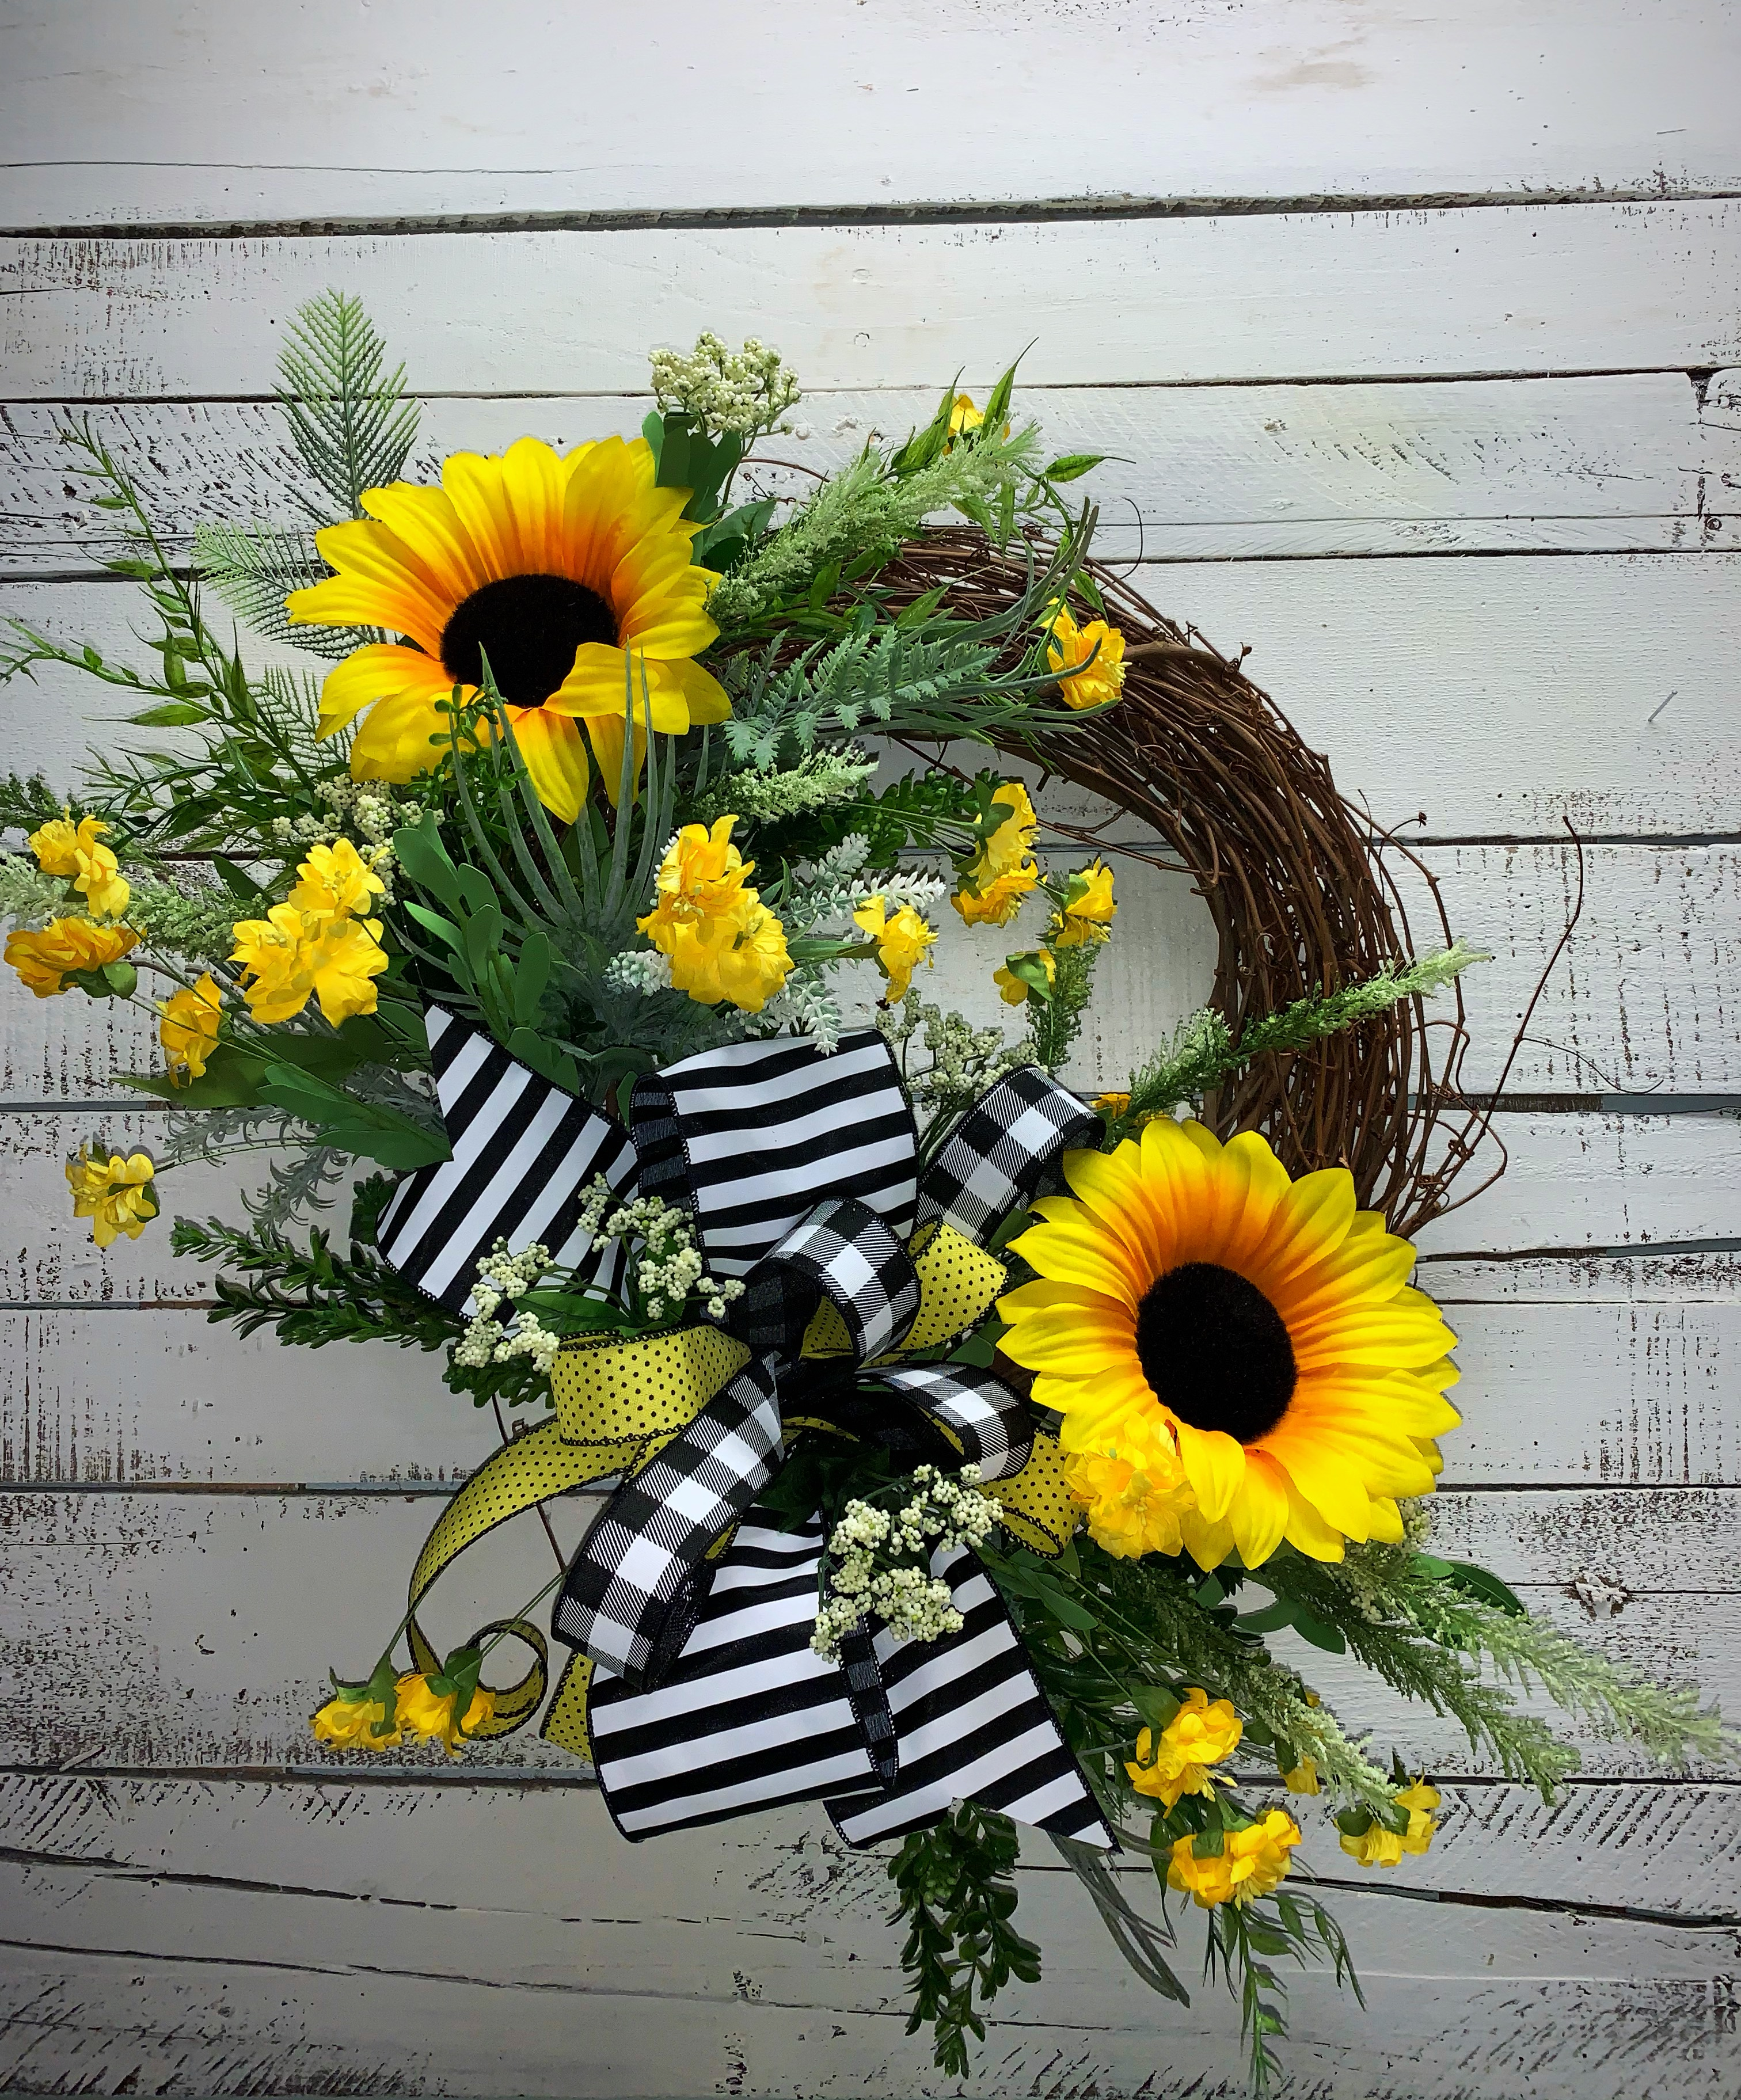 Home Decor For Sale: Summer Wreath, Summer Sunflowers, Large Sunflowers